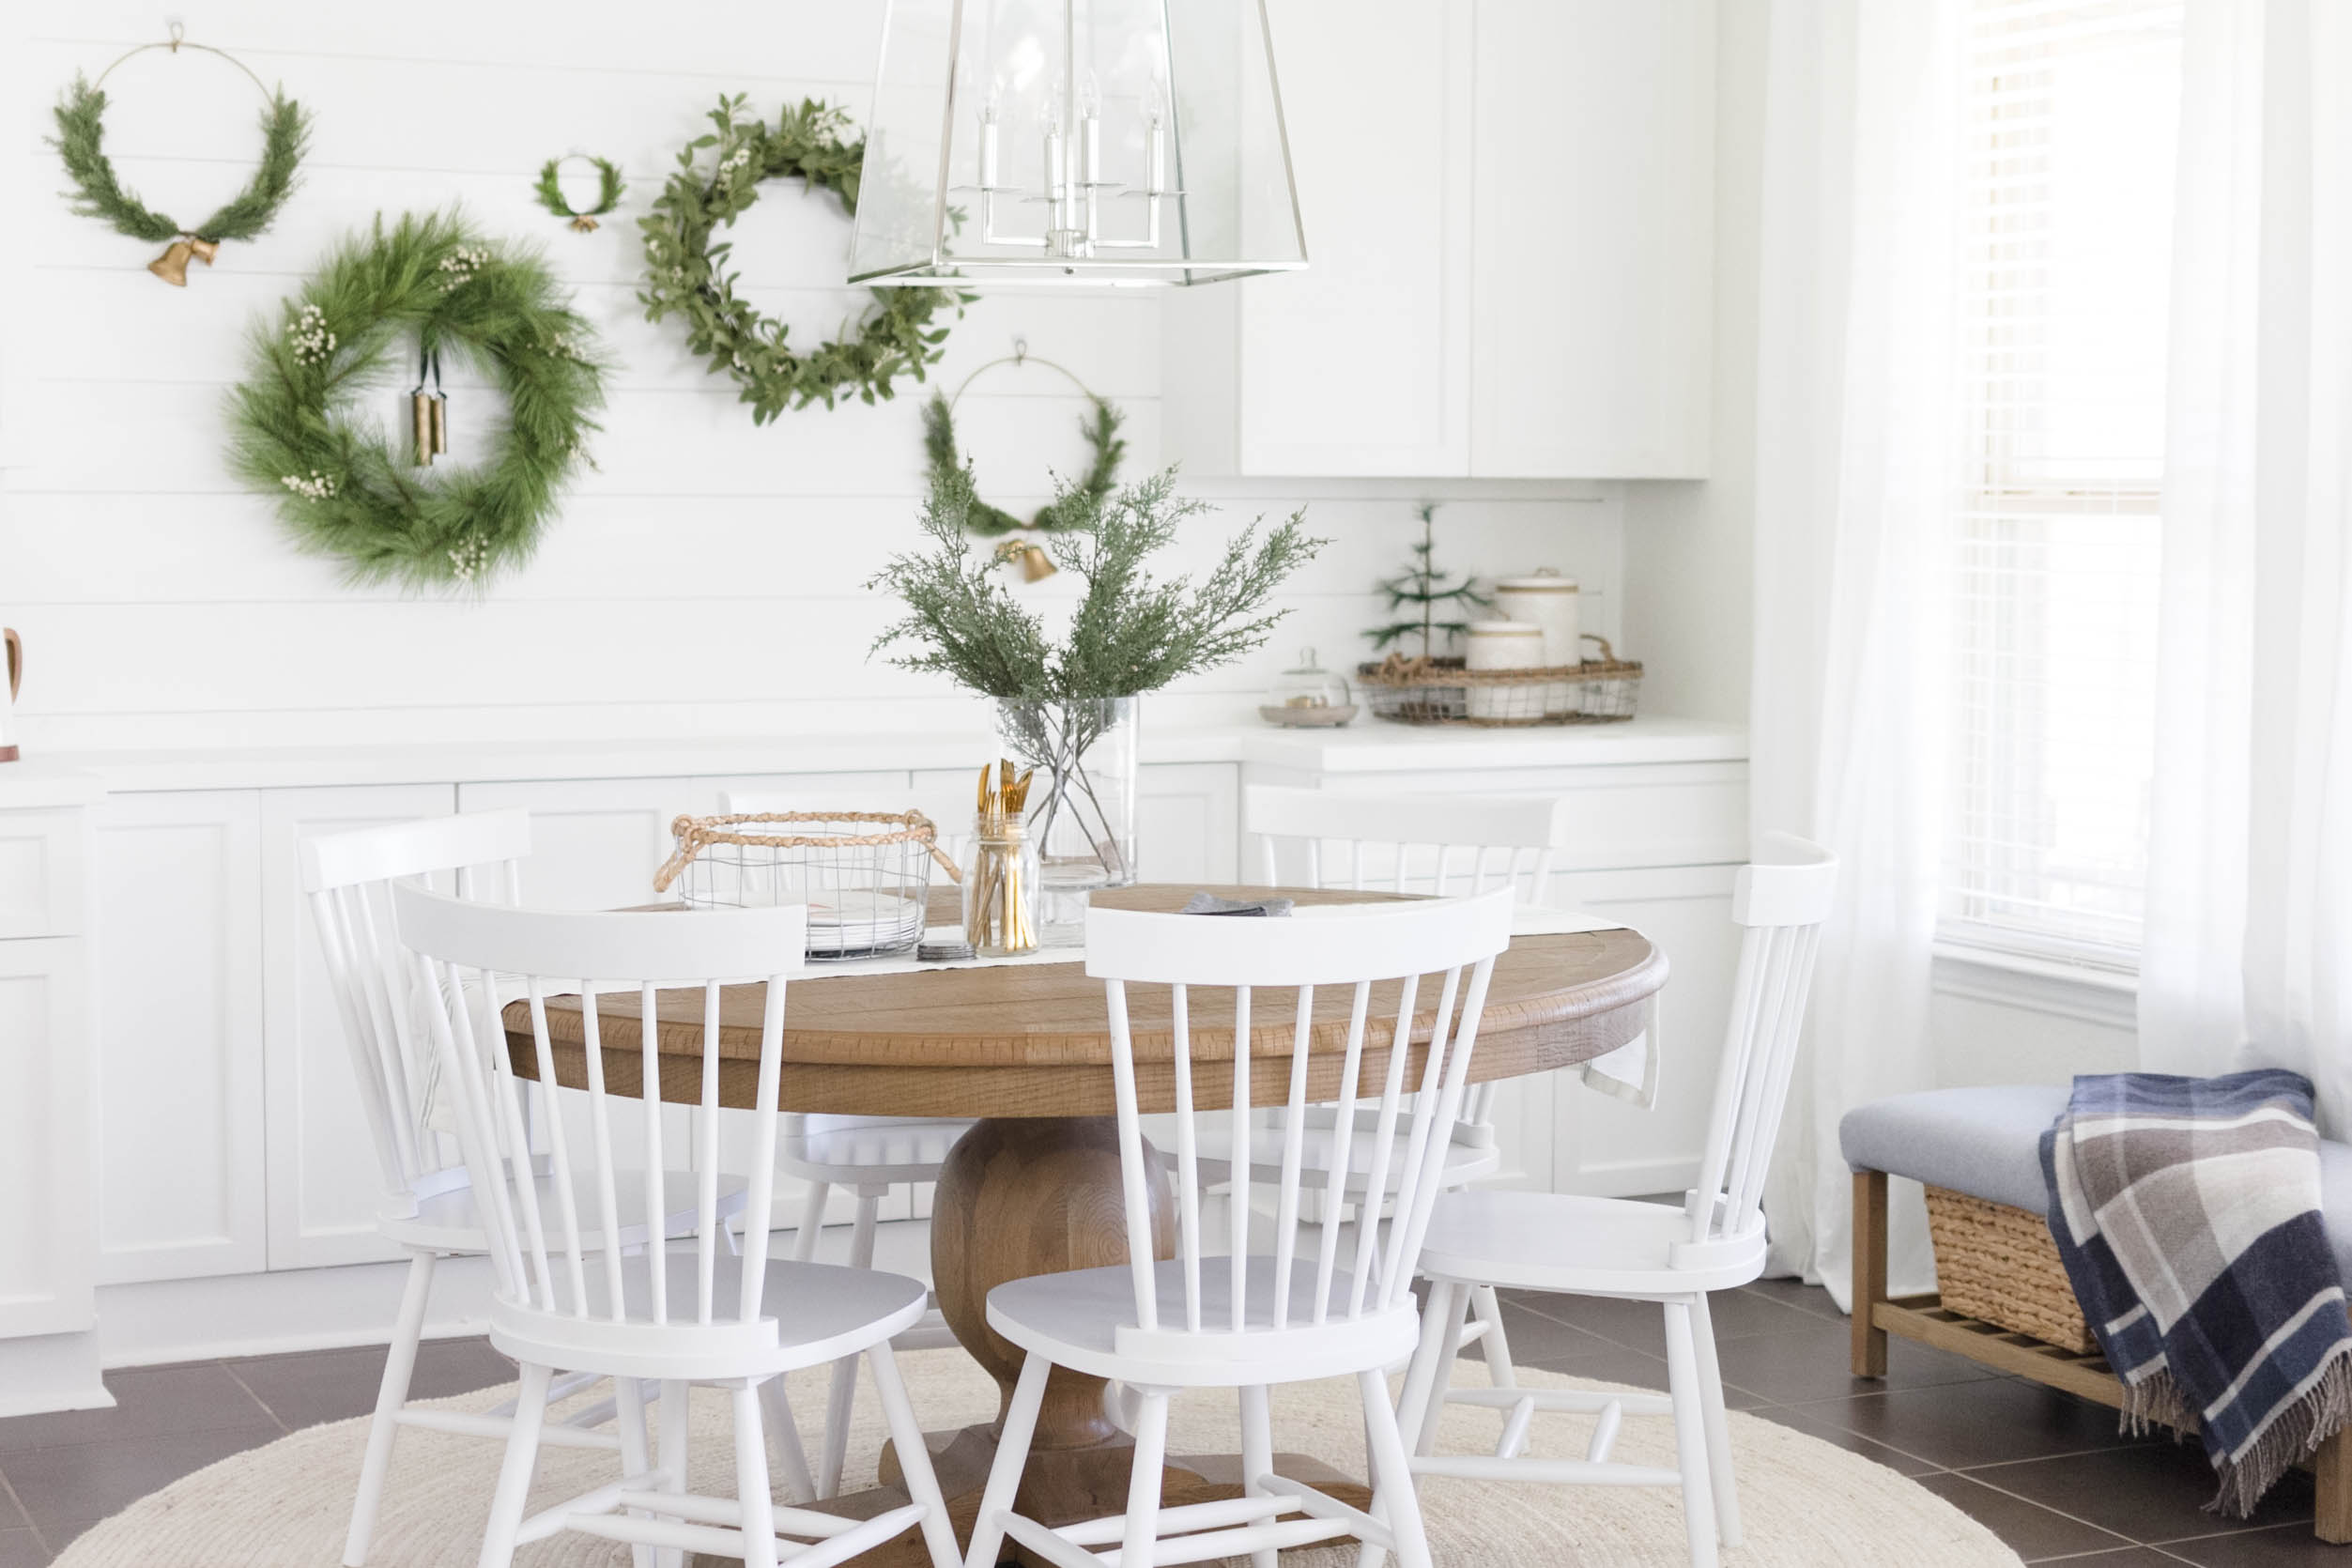 Holiday Decorating Dining Room Decorating Ideas With IrisNacole.com